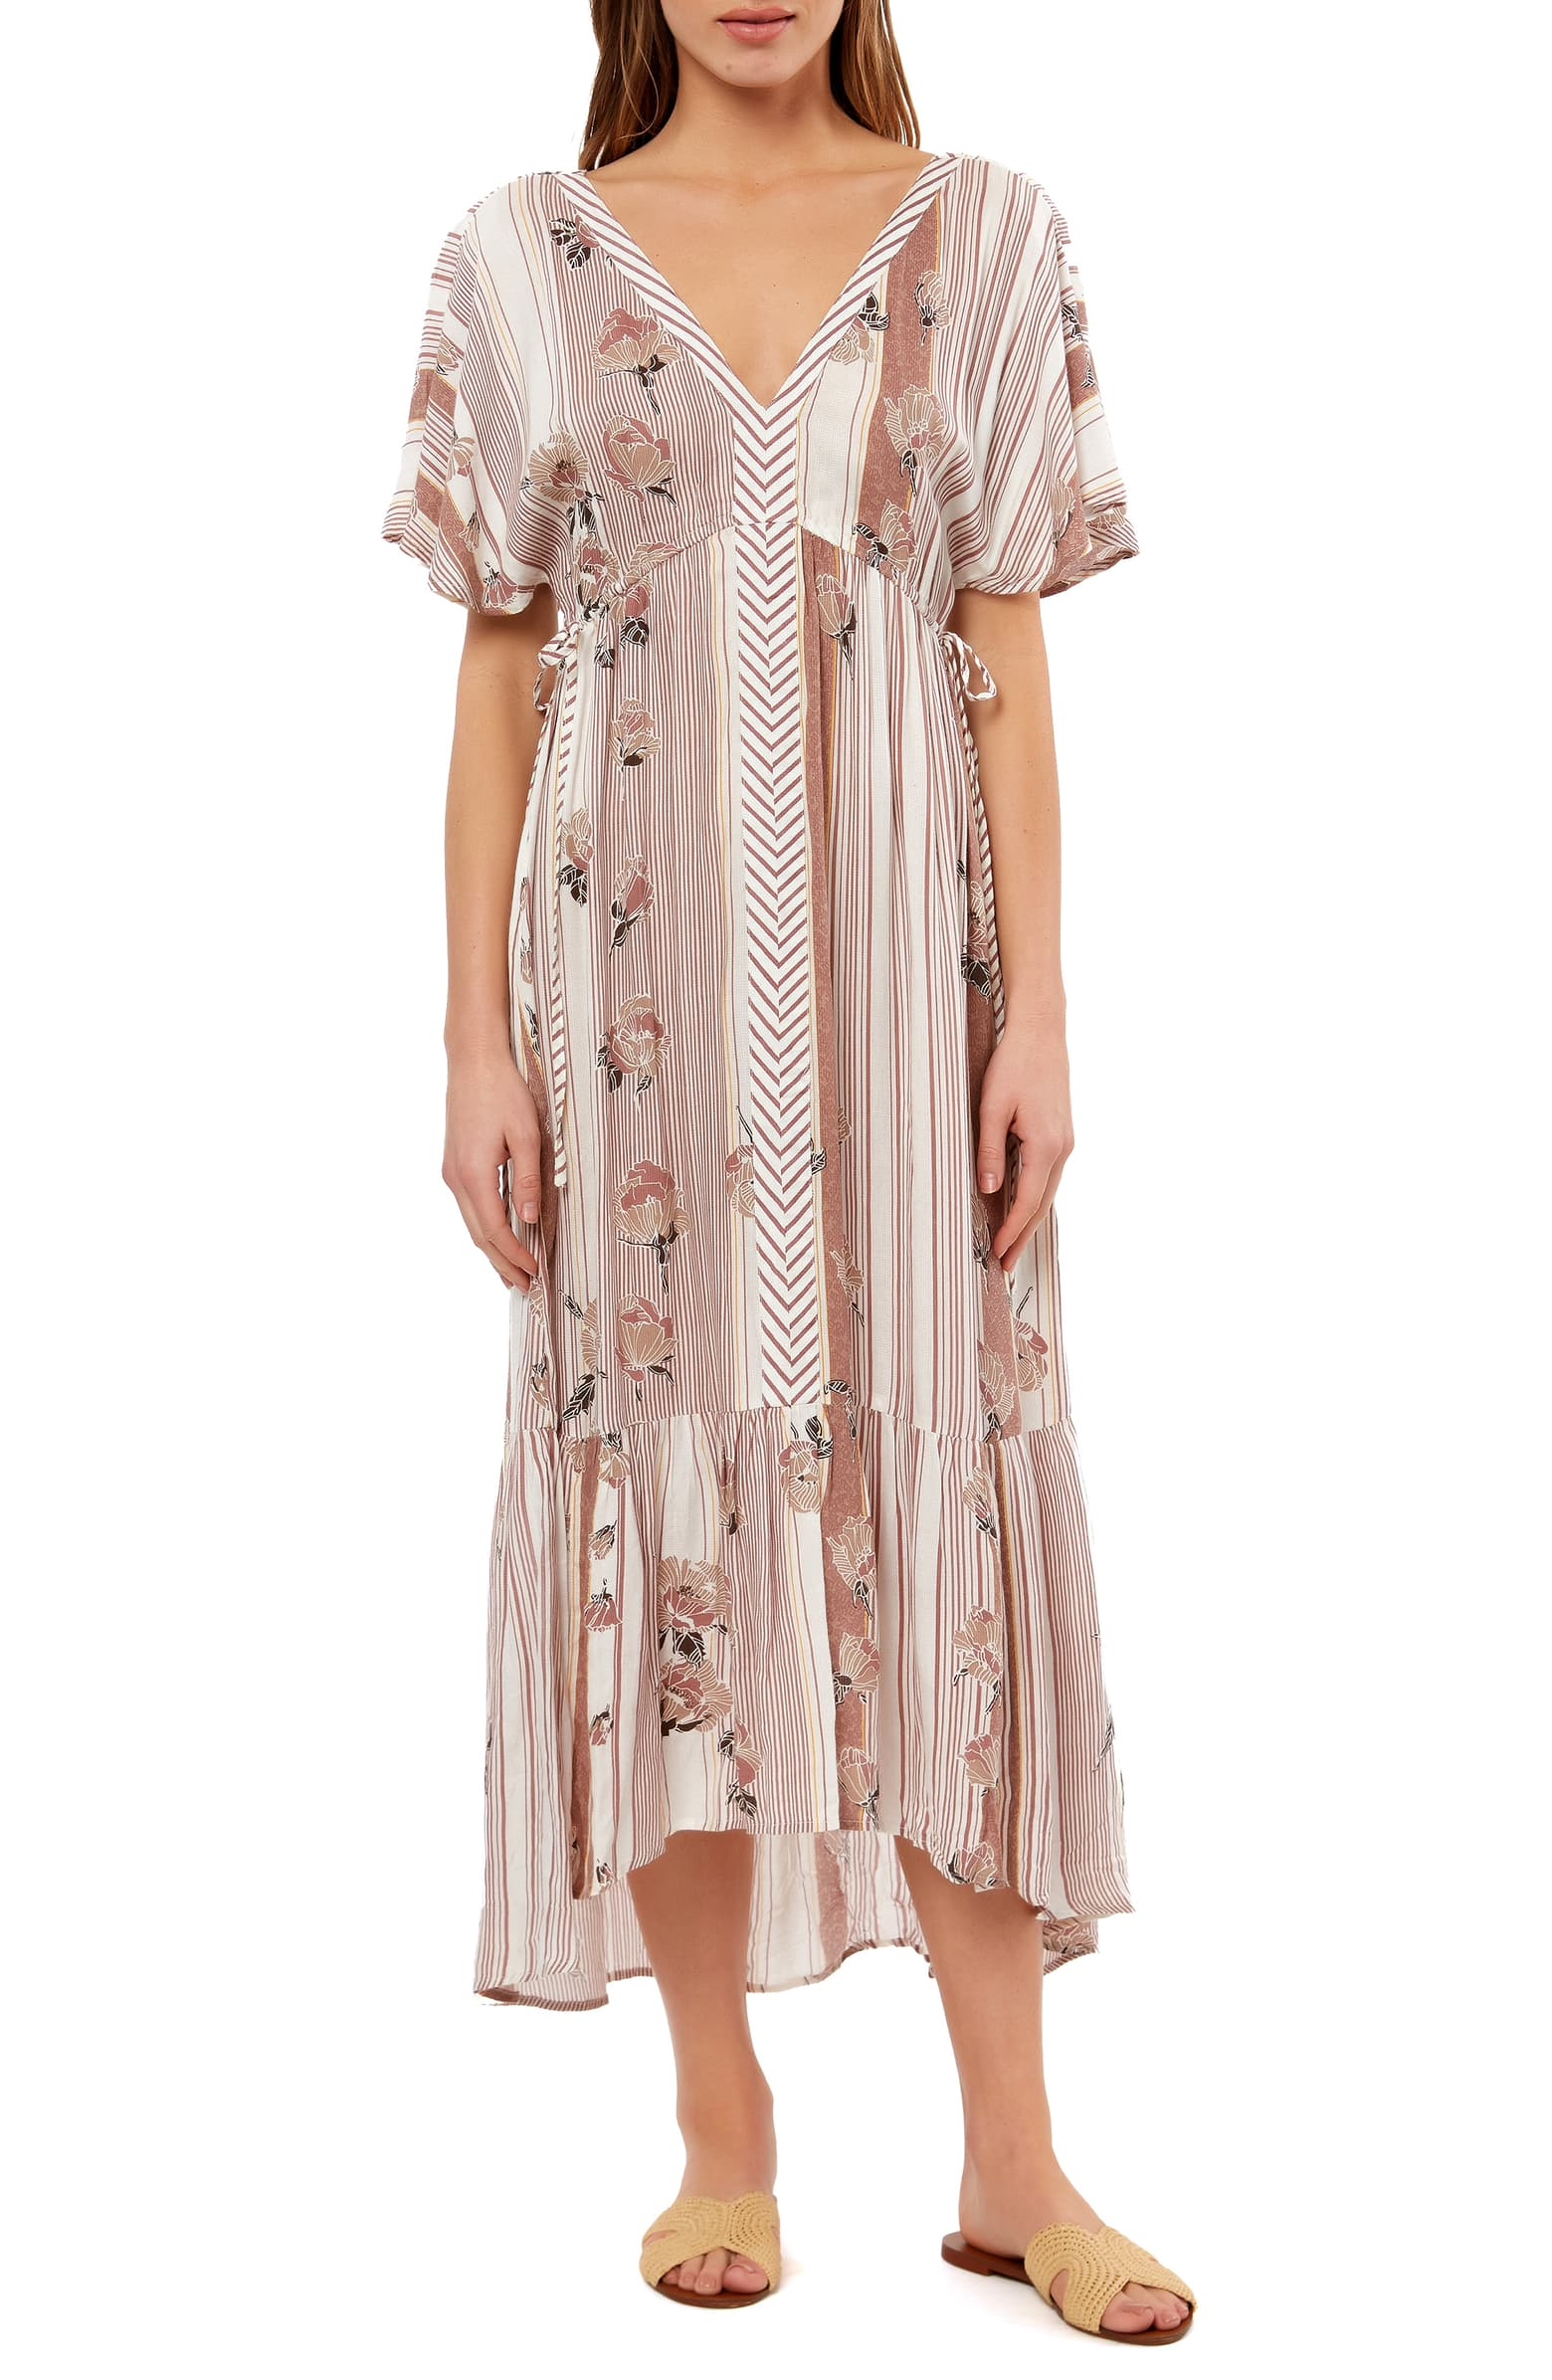 This runs BIG and is a deep V, which makes it great for a coverup or casual beach dress!